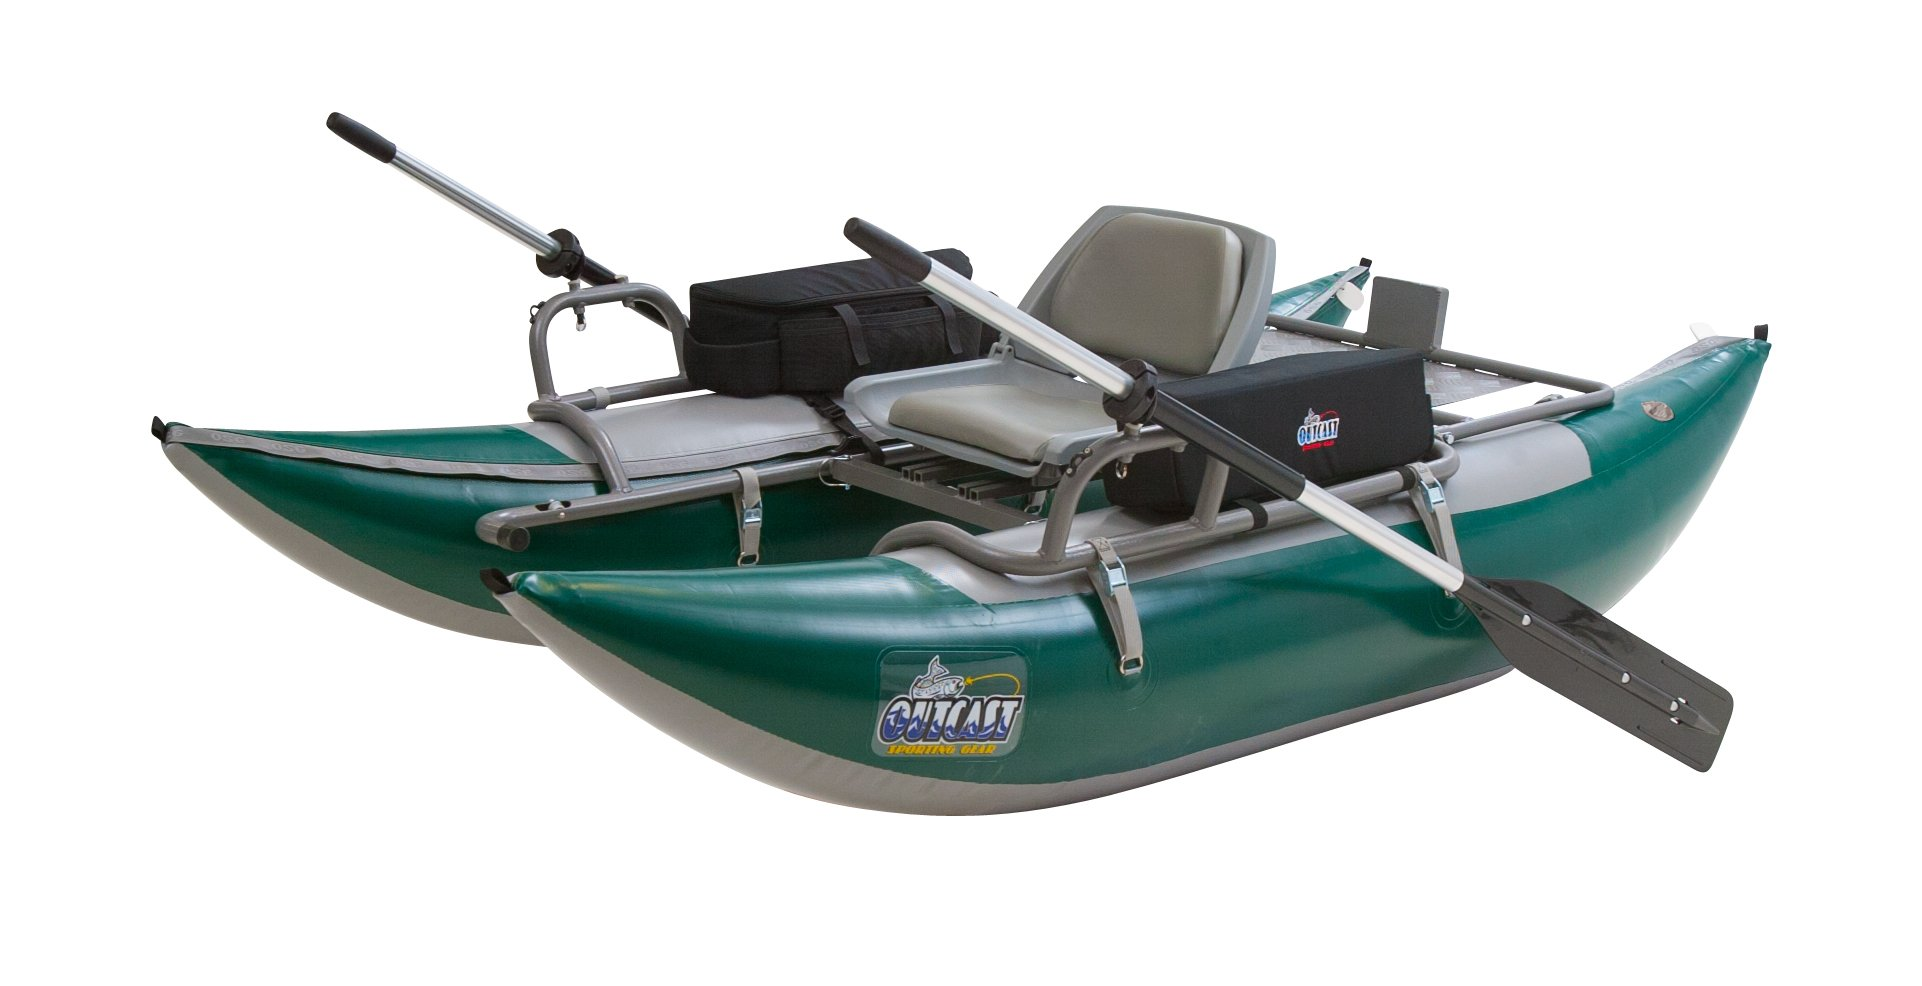 Outcast PAC 1000 Pontoon Boat - with in the lower 48 US States and $100 Gift Card by Outcast